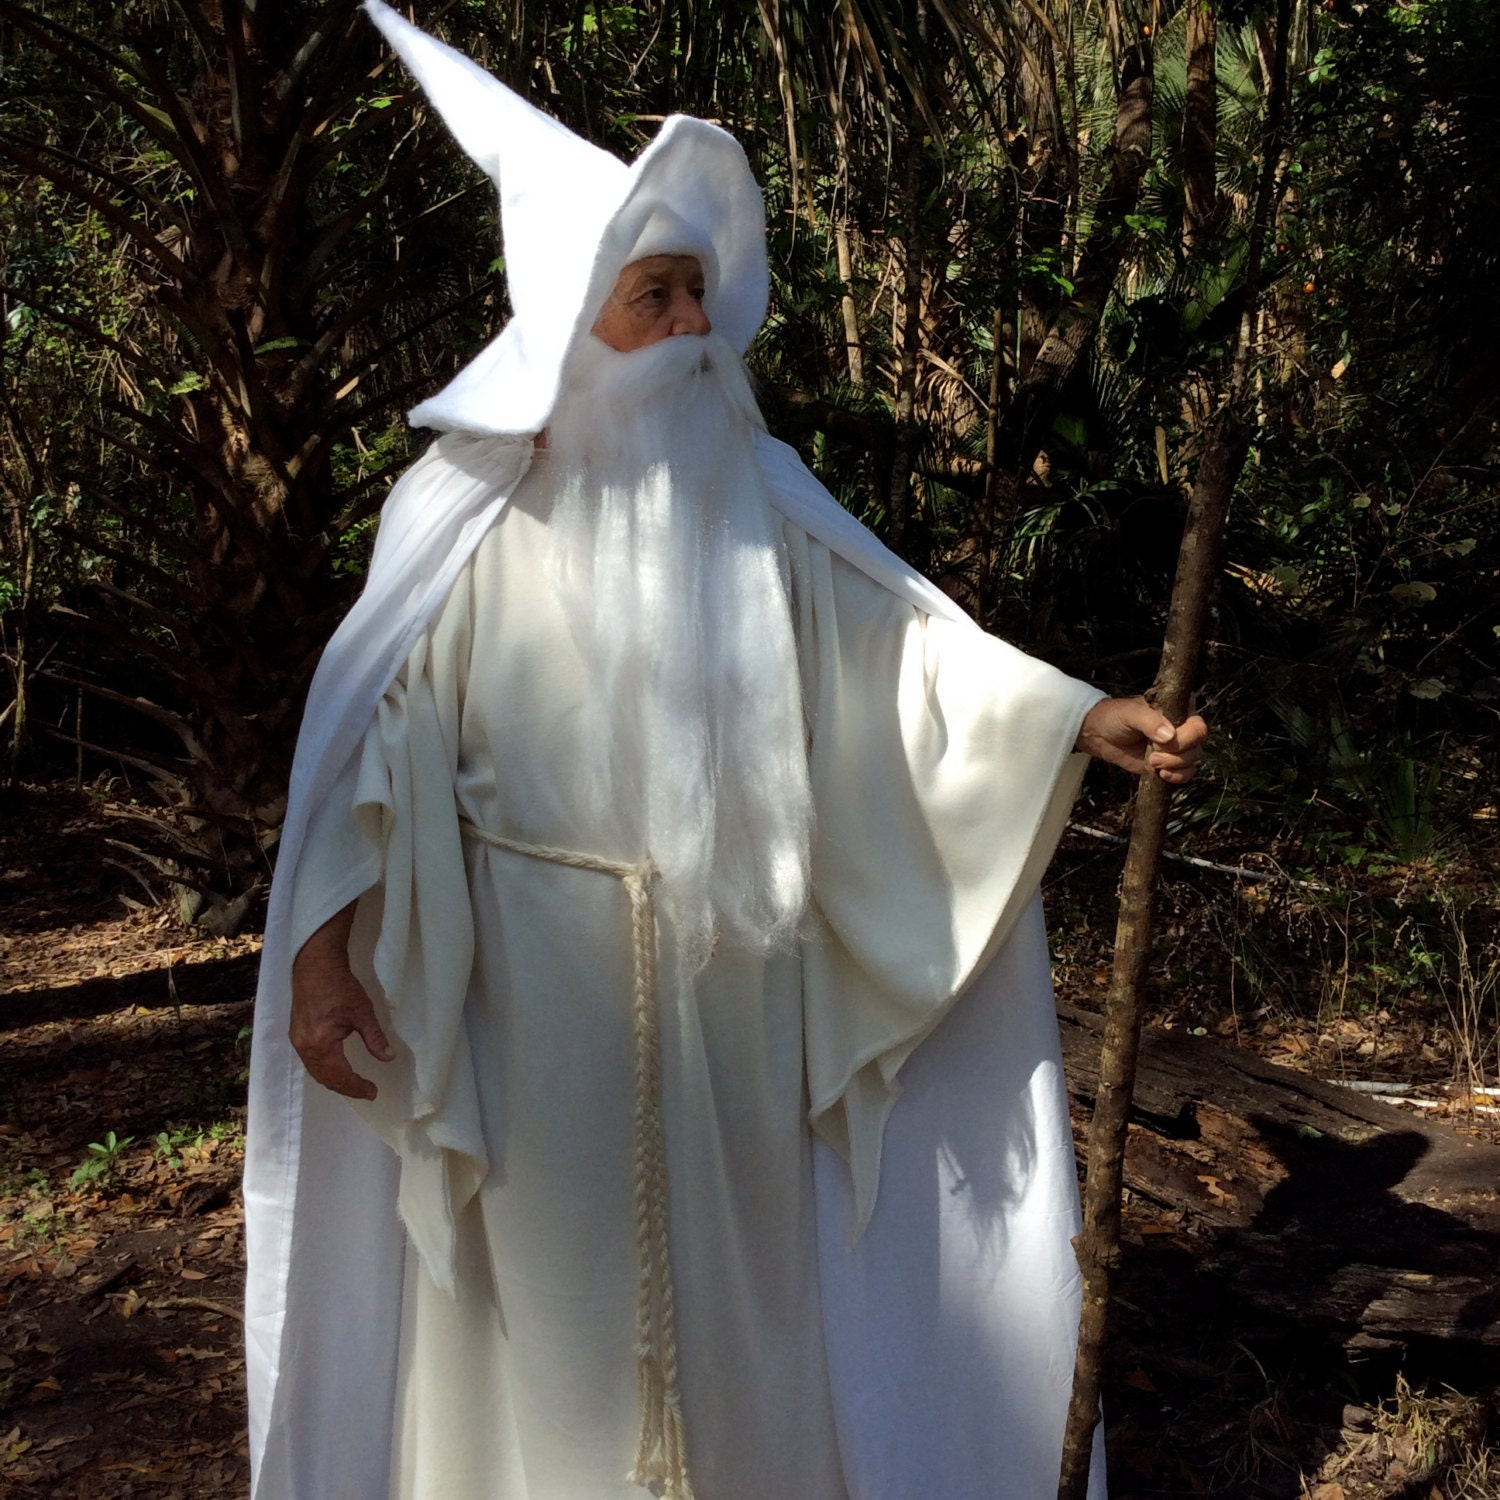 Robe And Wizard Hat: Gandalf The White Costume Flowing Hooded Cape Over Robe